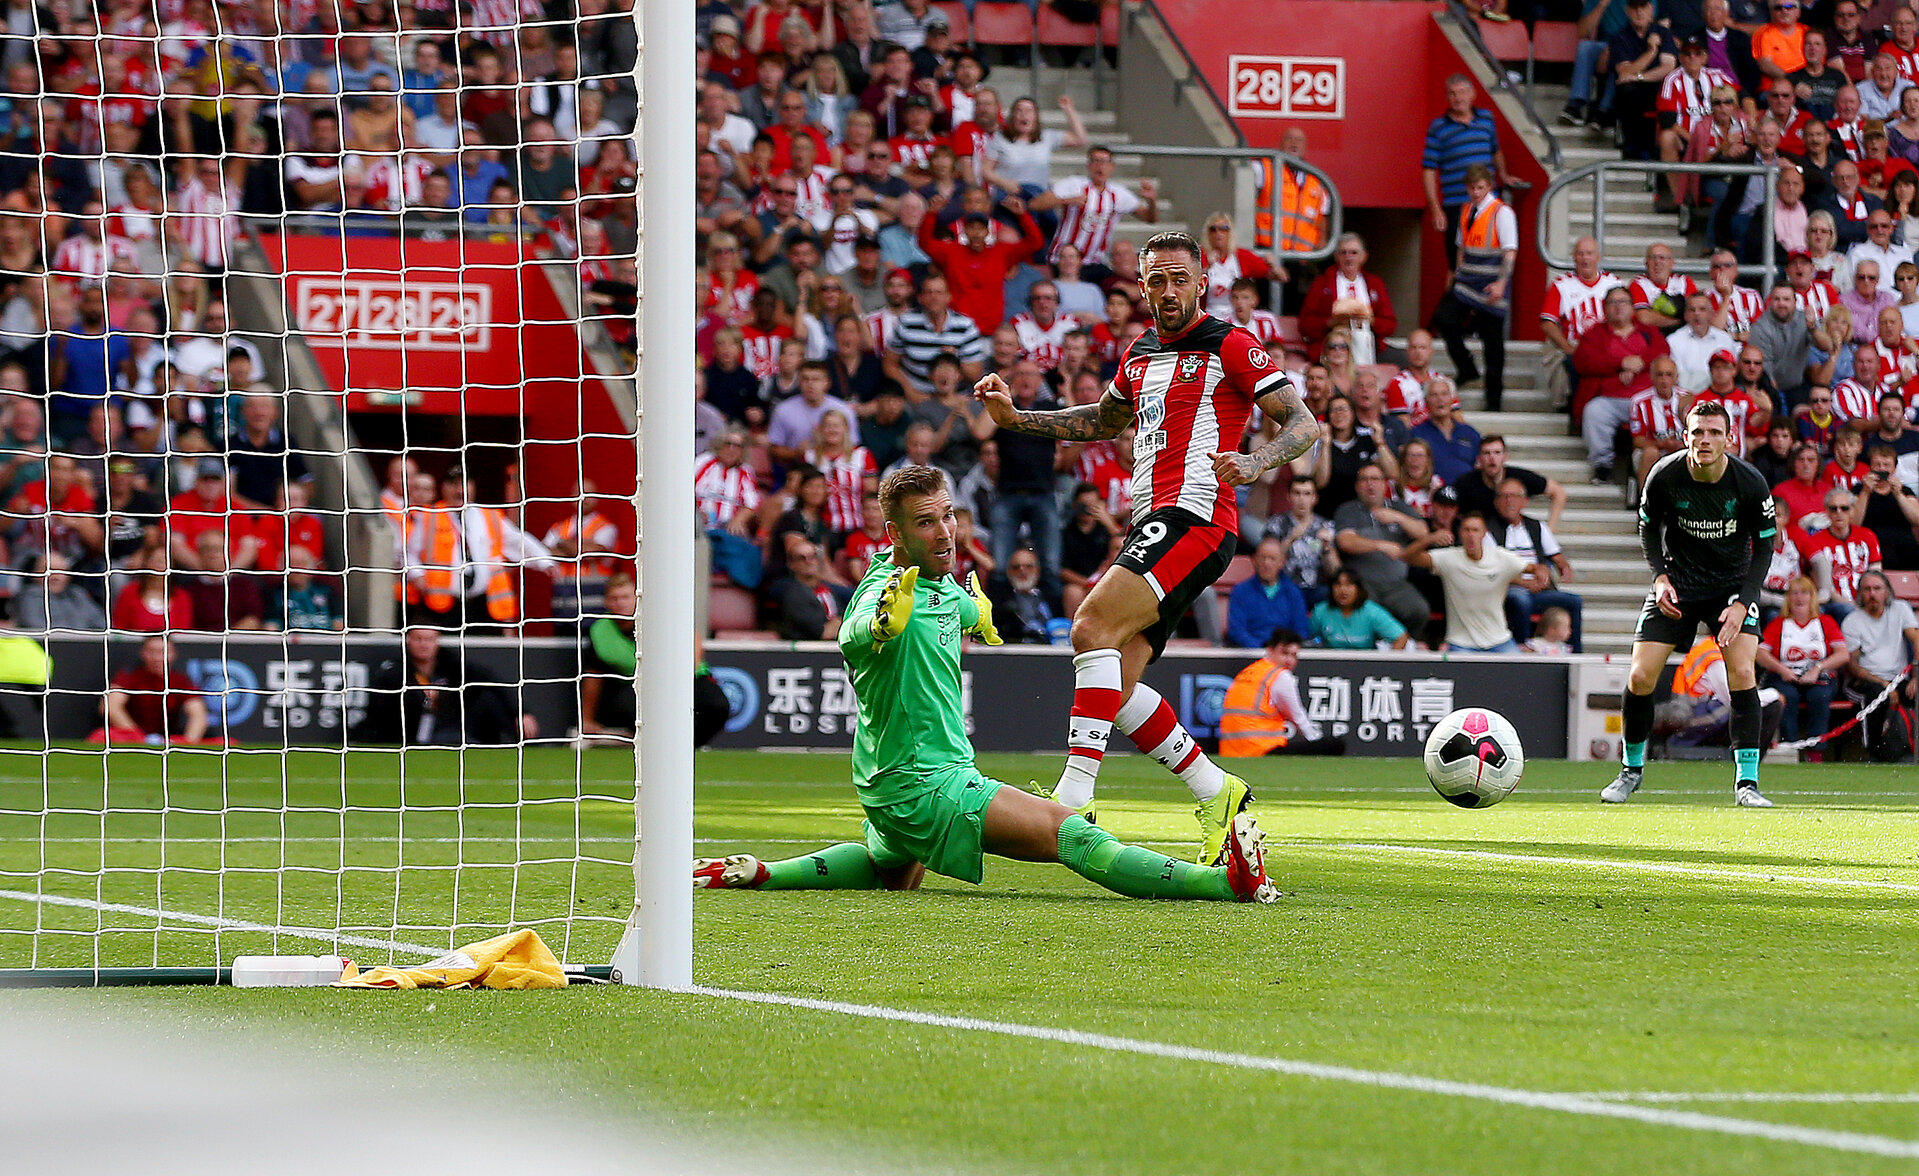 SOUTHAMPTON, ENGLAND - AUGUST 17: Danny Ings of Southampton looks to get on the end of a cross during the Premier League match between Southampton FC and Liverpool FC at St Mary's Stadium on August 17, 2019 in Southampton, United Kingdom. (Photo by Matt Watson/Southampton FC via Getty Images)